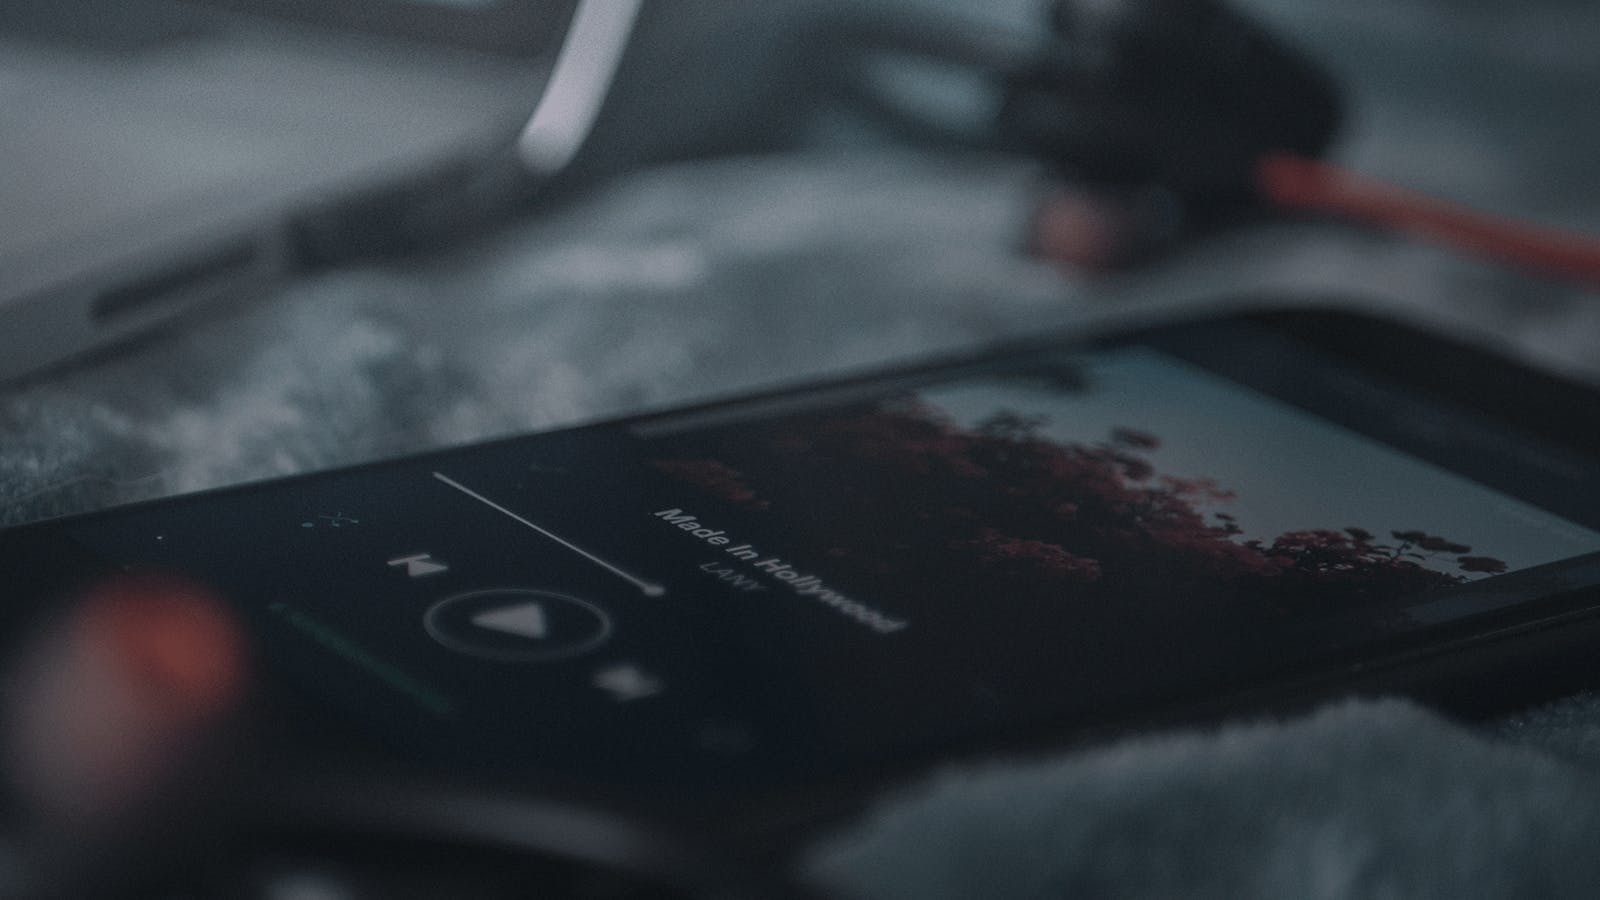 Mobile phone playing a song, showing how streaming is changing the music industry and how we consume music.